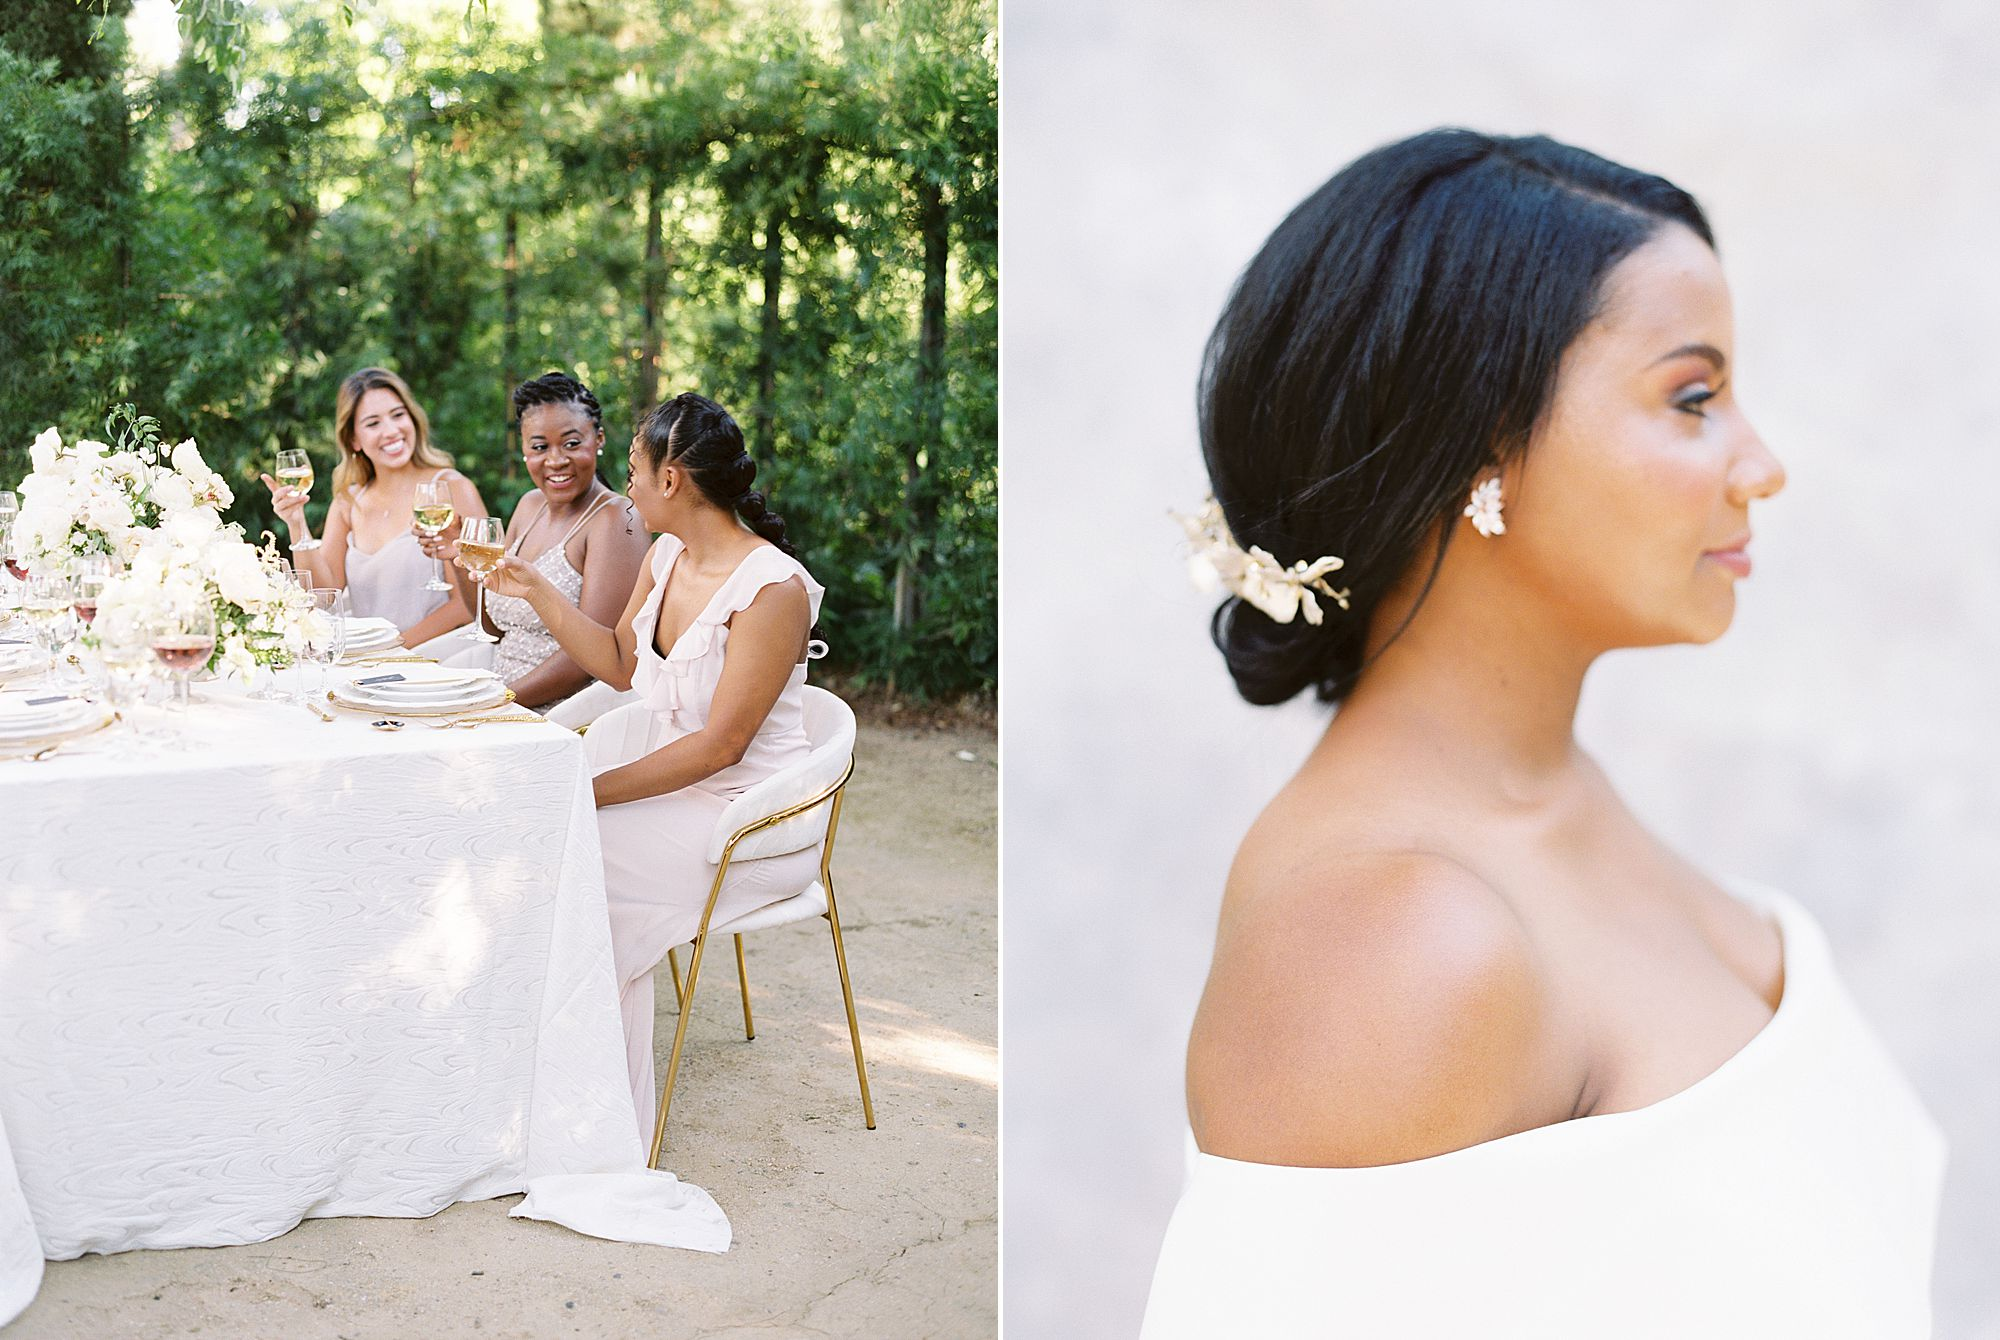 Park Winters Micro-Wedding Inspiration on Style Me Pretty - Stephanie Teague Events - Ashley Baumgartner - Park Winters Wedding - Black Tie Wedding - Micro-Wedding Sacramento Photographer_0059.jpg